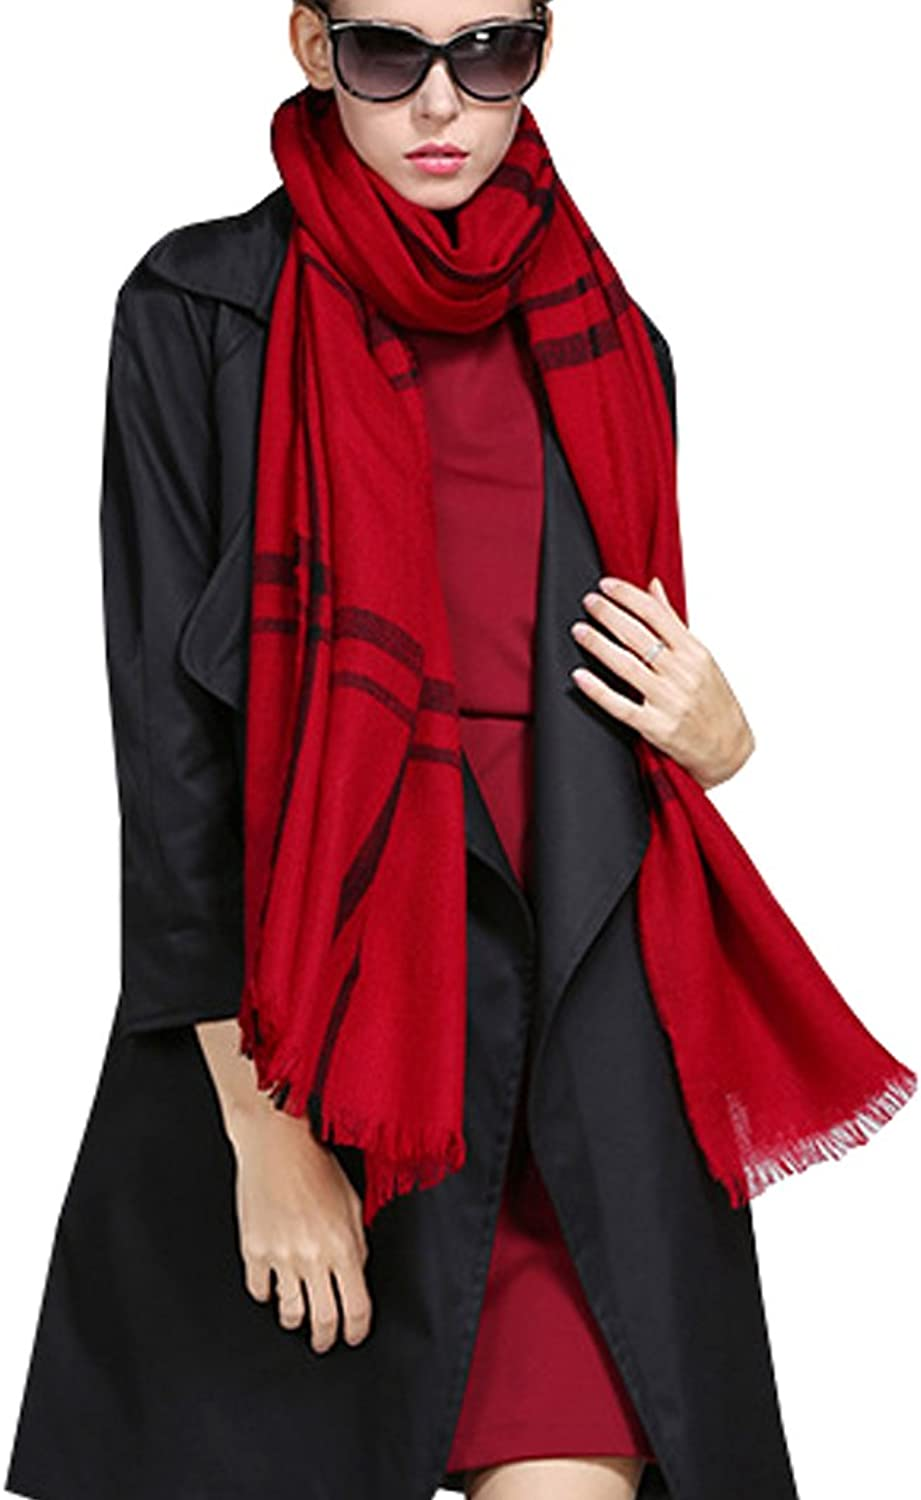 Fashion Silk Women's Wool Scarf 100% Pure Lambswool Reversible Striped Shawl Wrap